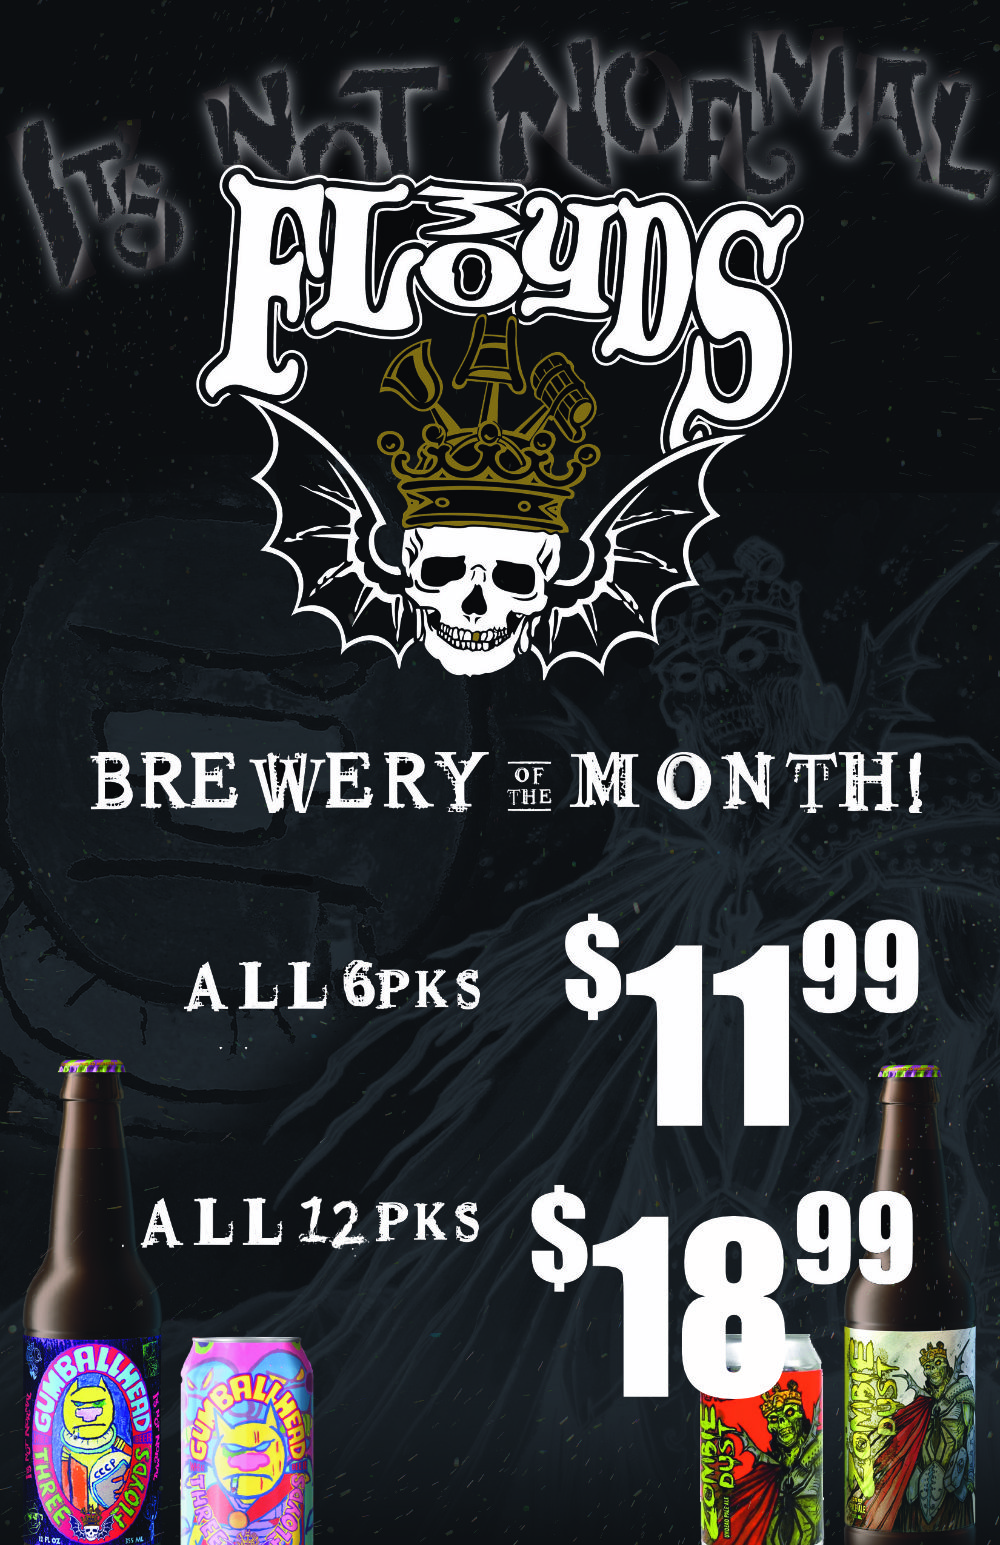 Fort Wayne's Featured Brewery of the Month - October 2021 features Three Floyd's Brewing Company! On Sale at all S&V Liquors stores across Fort Wayne, New Haven, Churubusco, Garrett, and Woodburn!